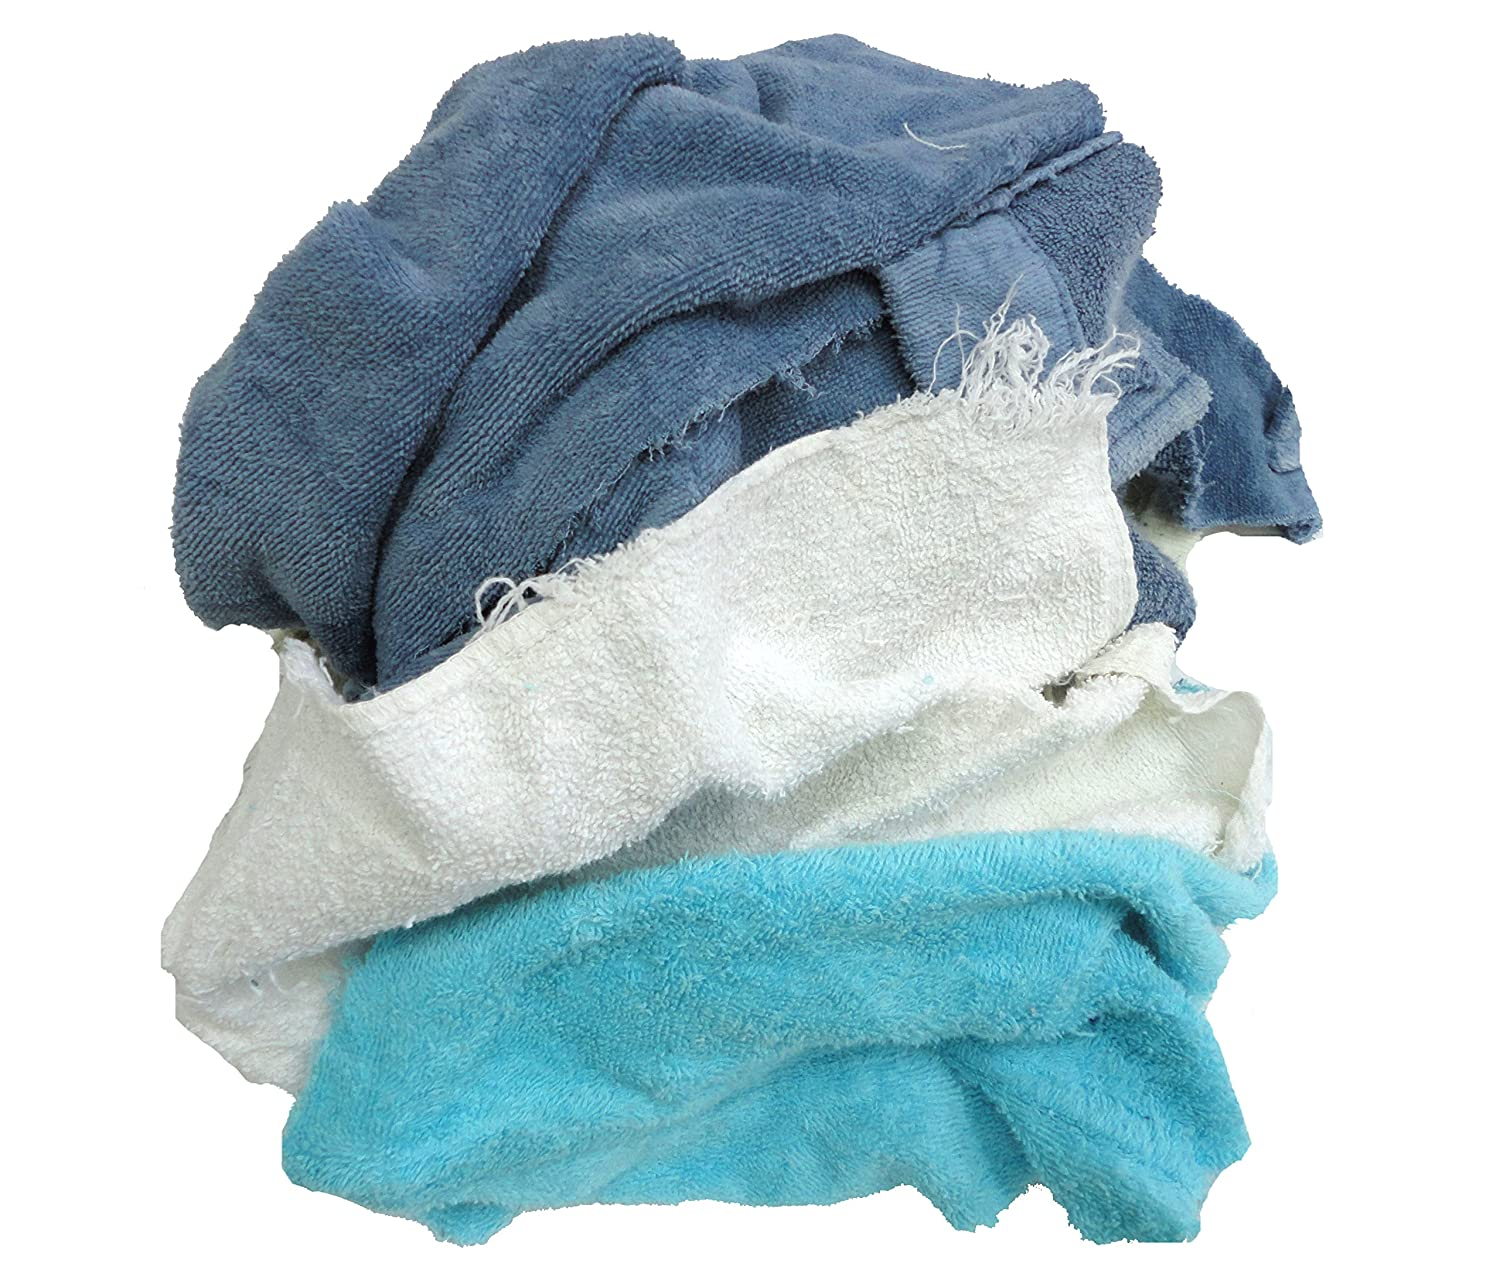 Pro Clean Basics Colored Terry Cloth Rags 3 lb. Bag